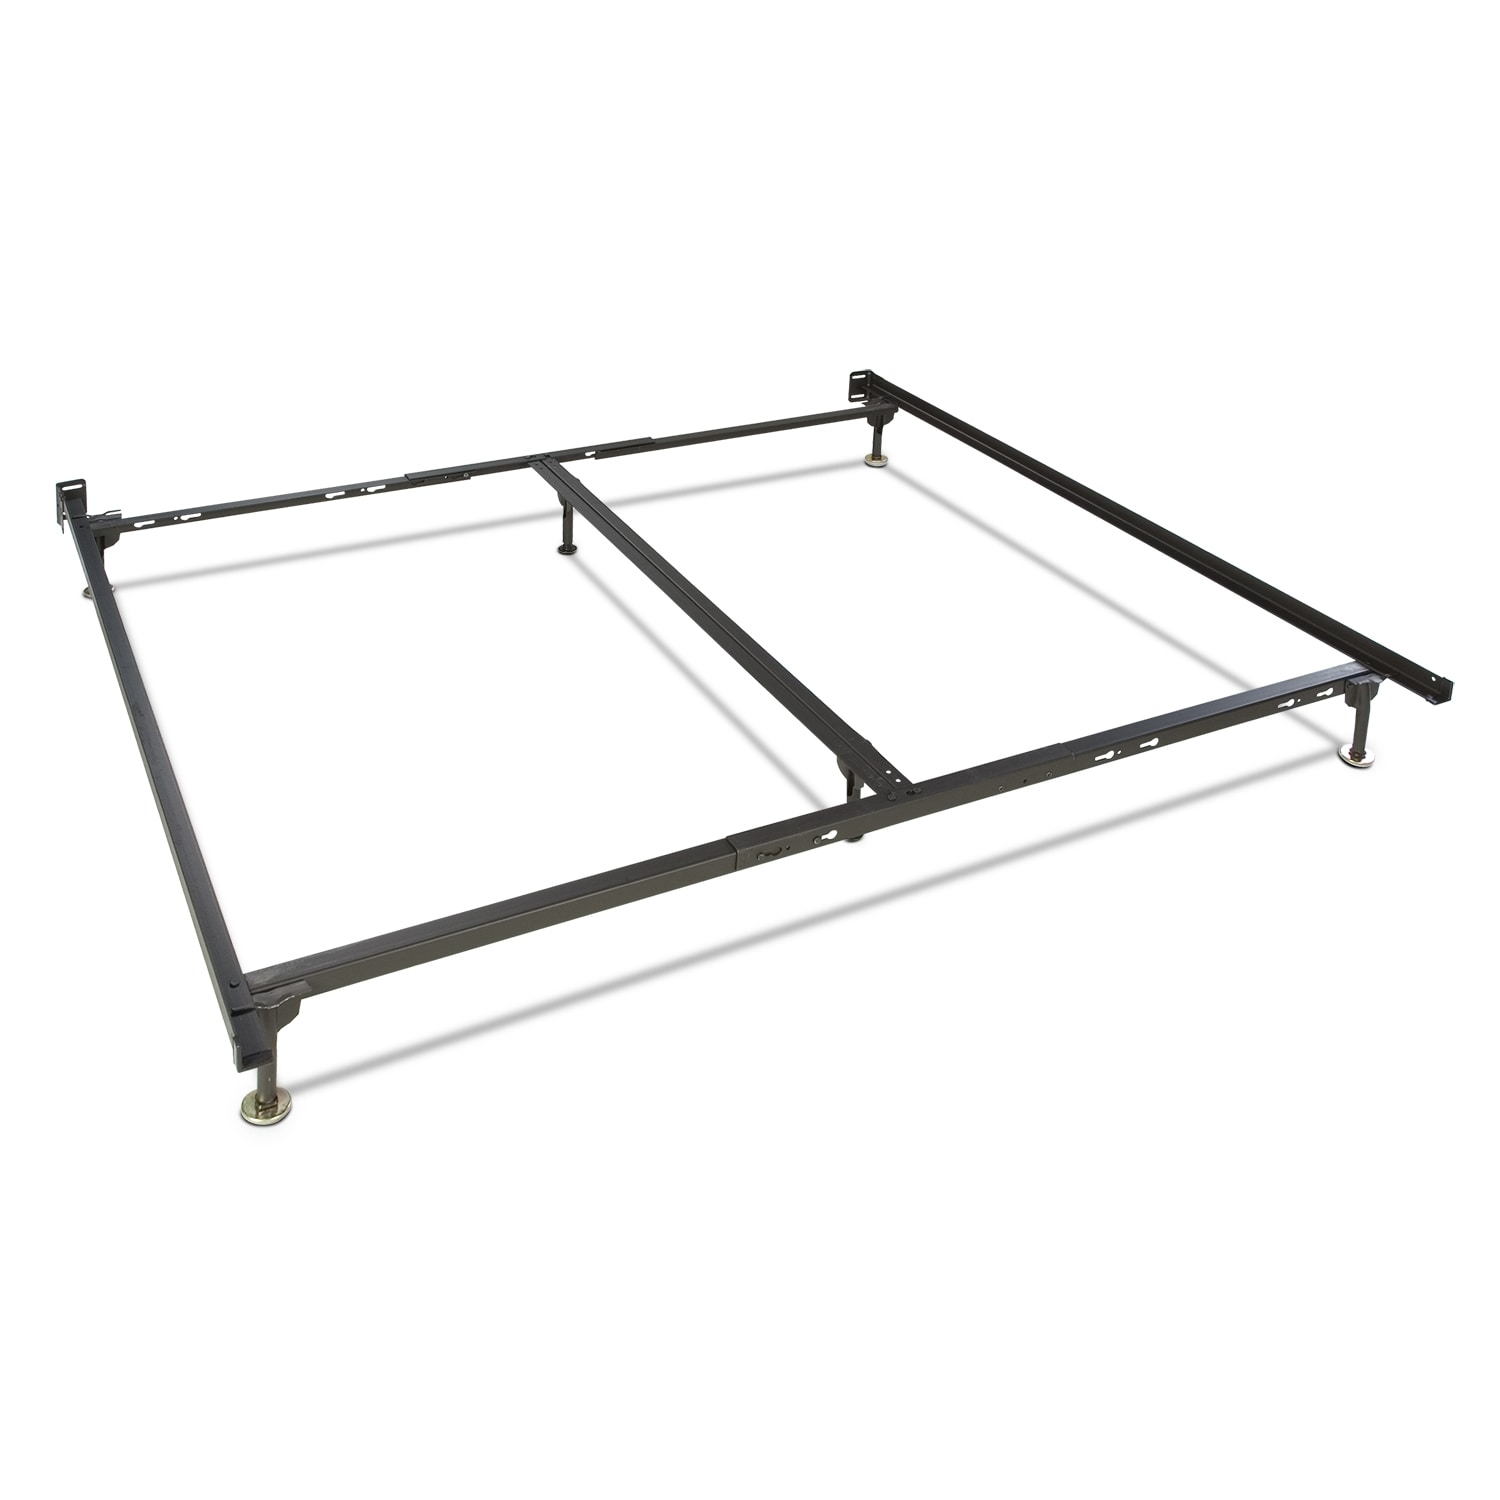 Mattresses and Bedding - 44G King Bed Frame